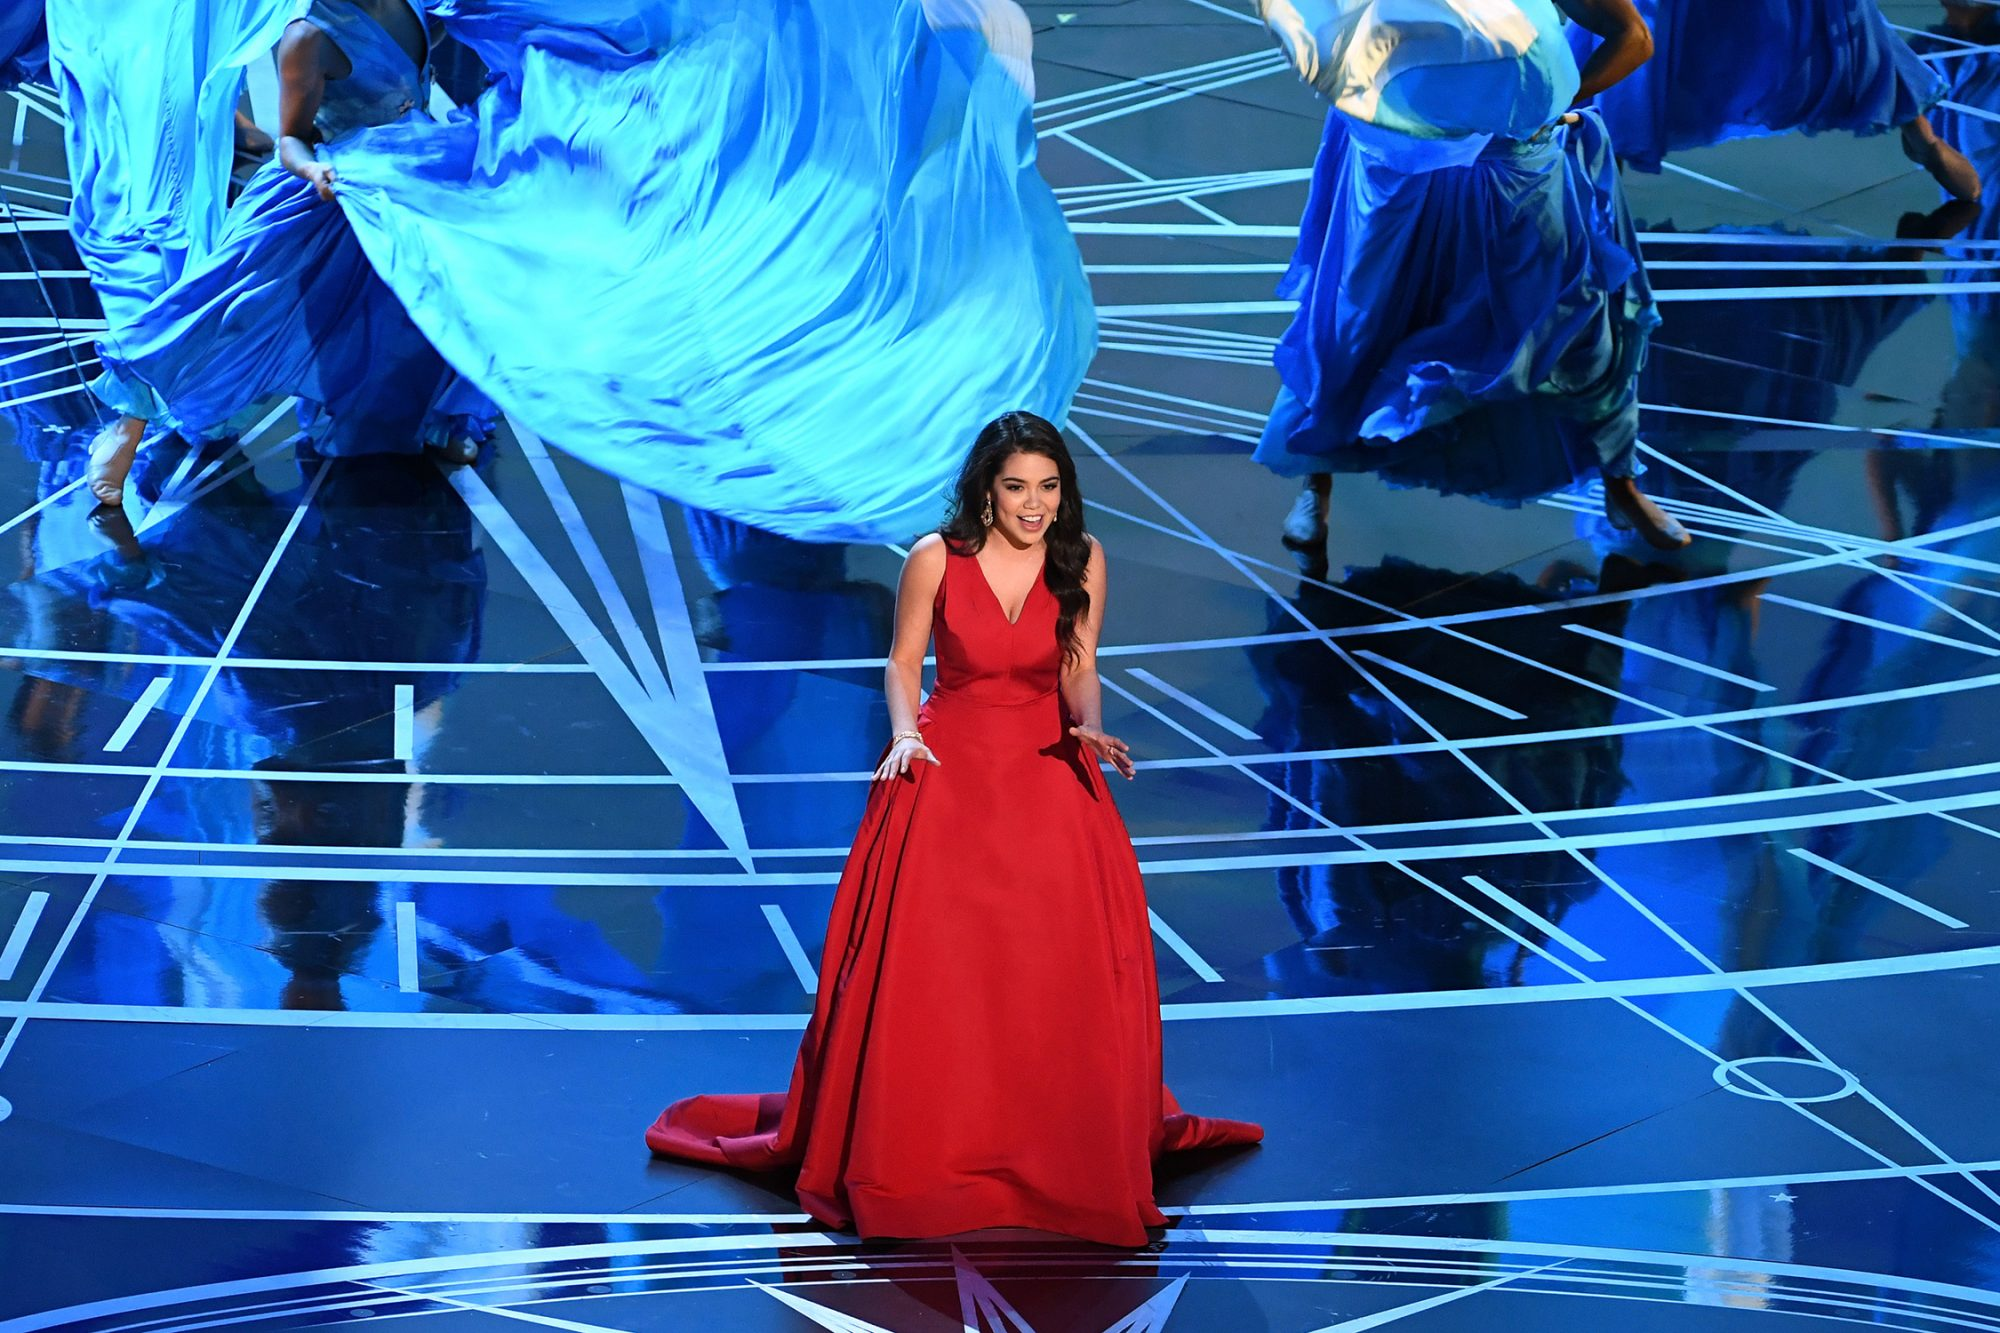 HOLLYWOOD, CA - FEBRUARY 26: Actor/singer Auli'i Cravalho performs onstage during the 89th Annual Academy Awards at Hollywood & Highland Center on February 26, 2017 in Hollywood, California. (Photo by Kevin Winter/Getty Images)